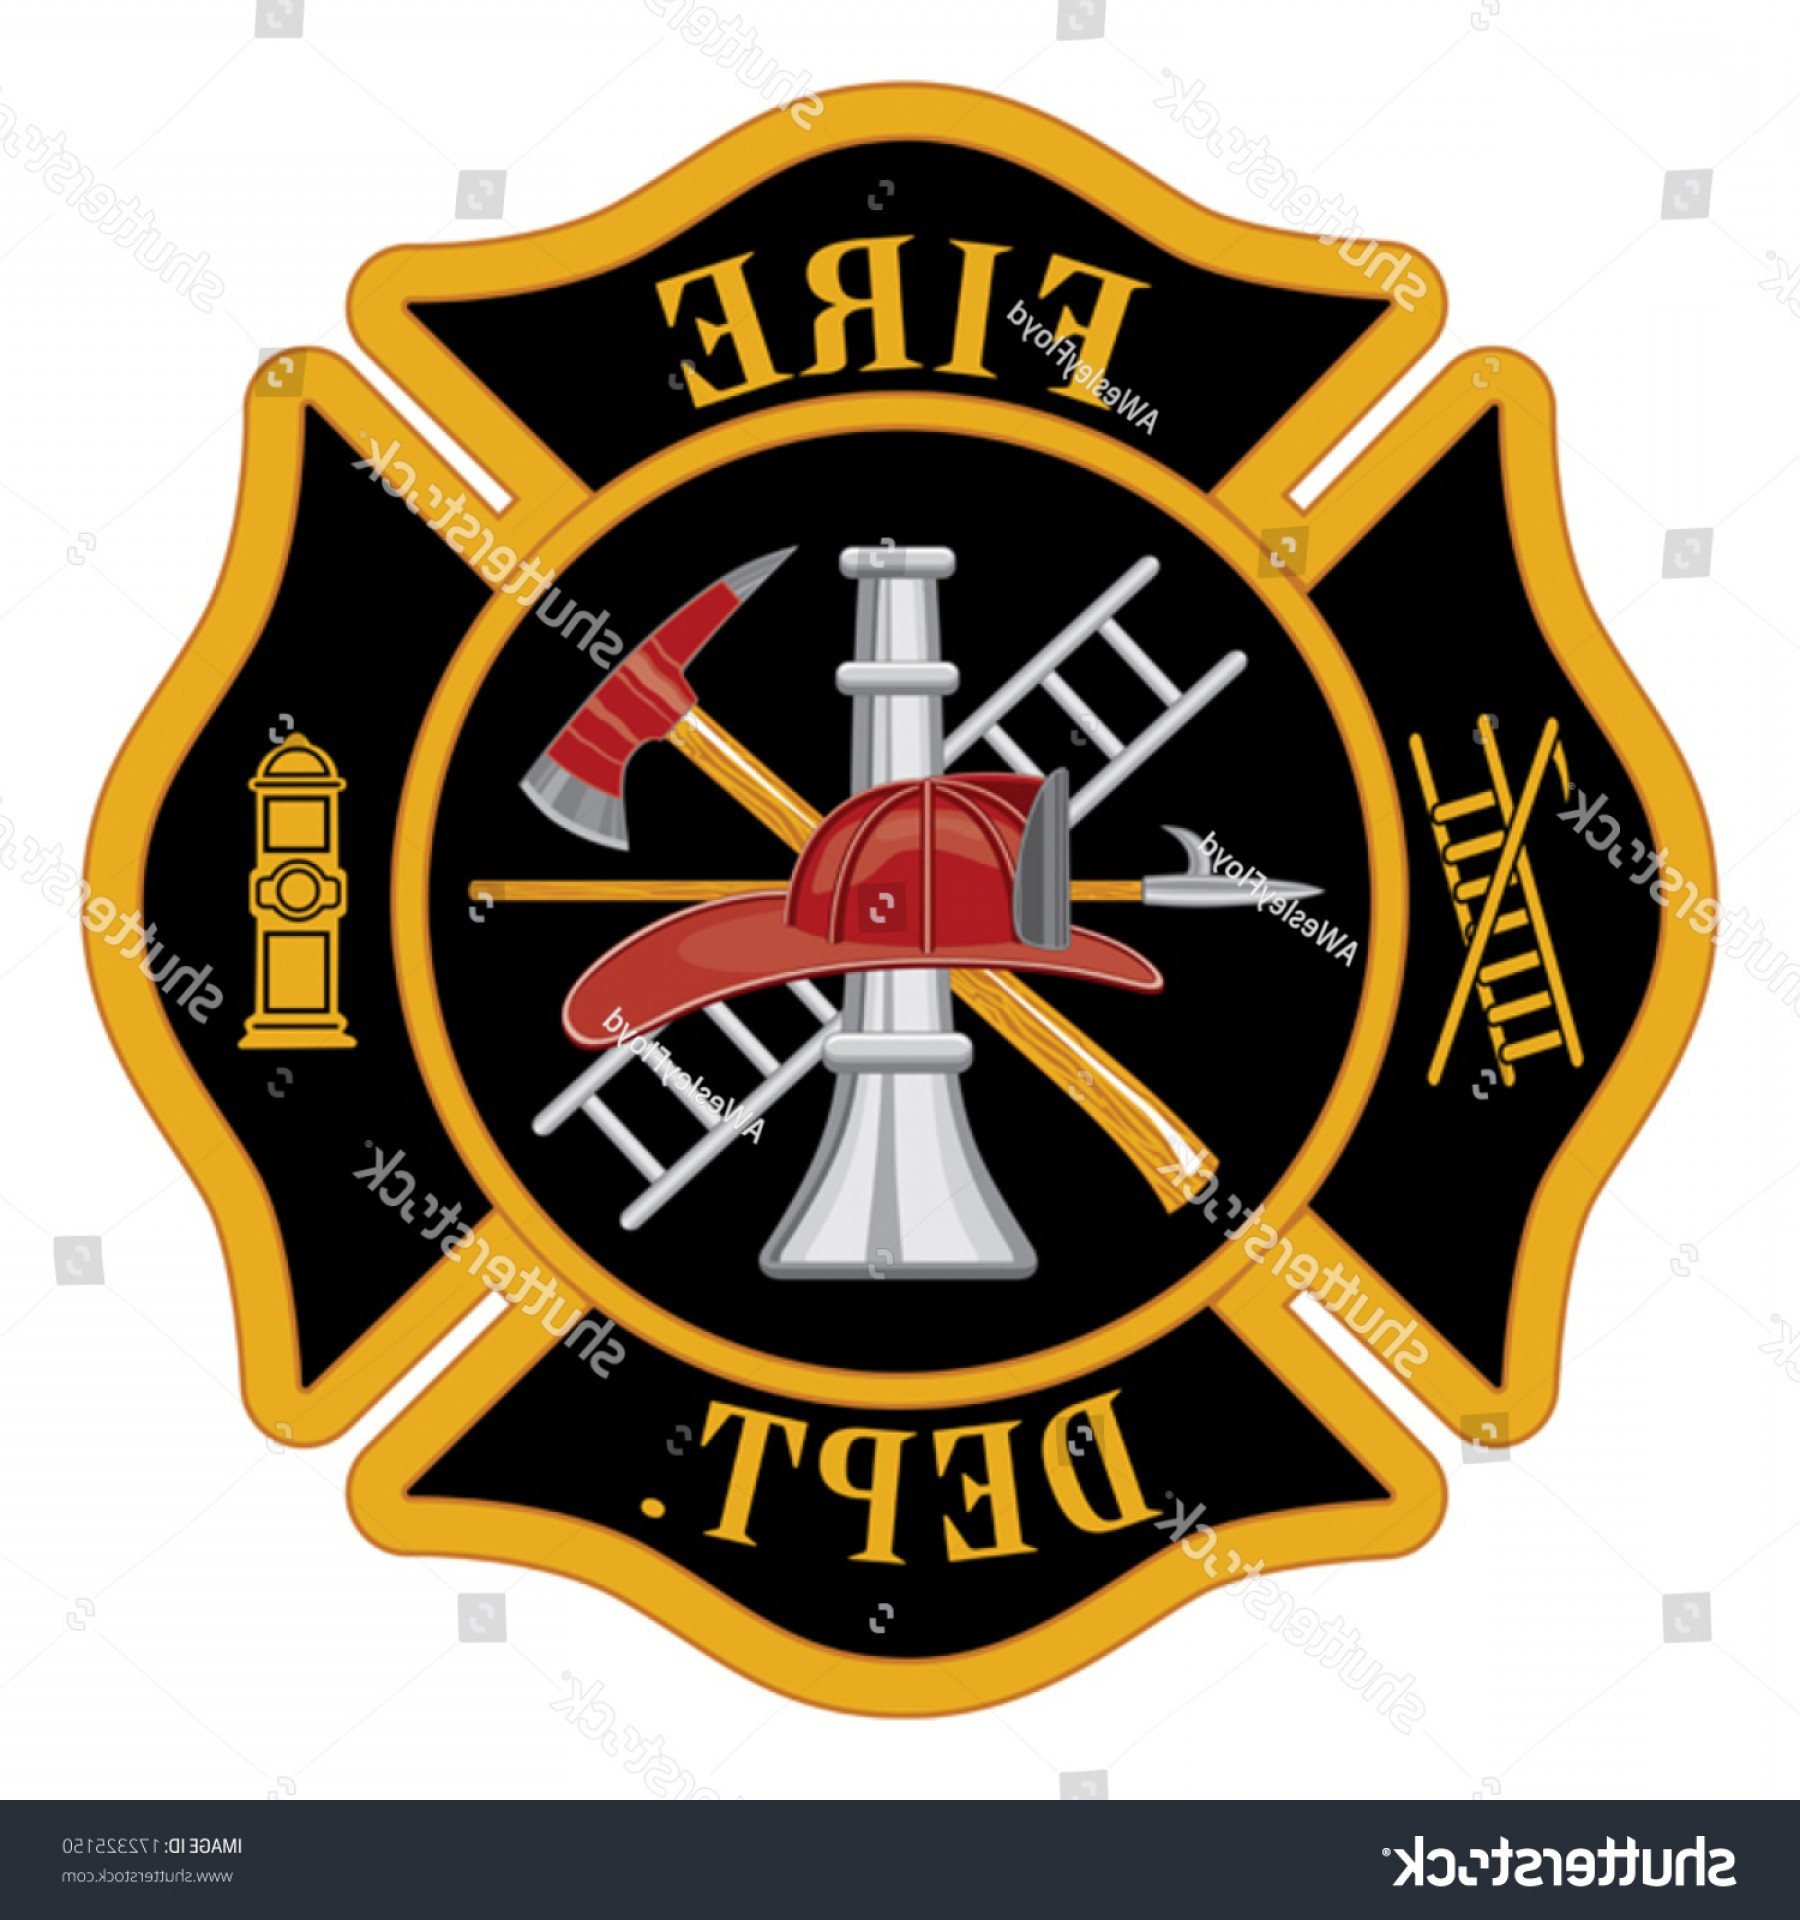 Fire Maltese Vector: Fire Department Maltese Cross Symbol Illustration